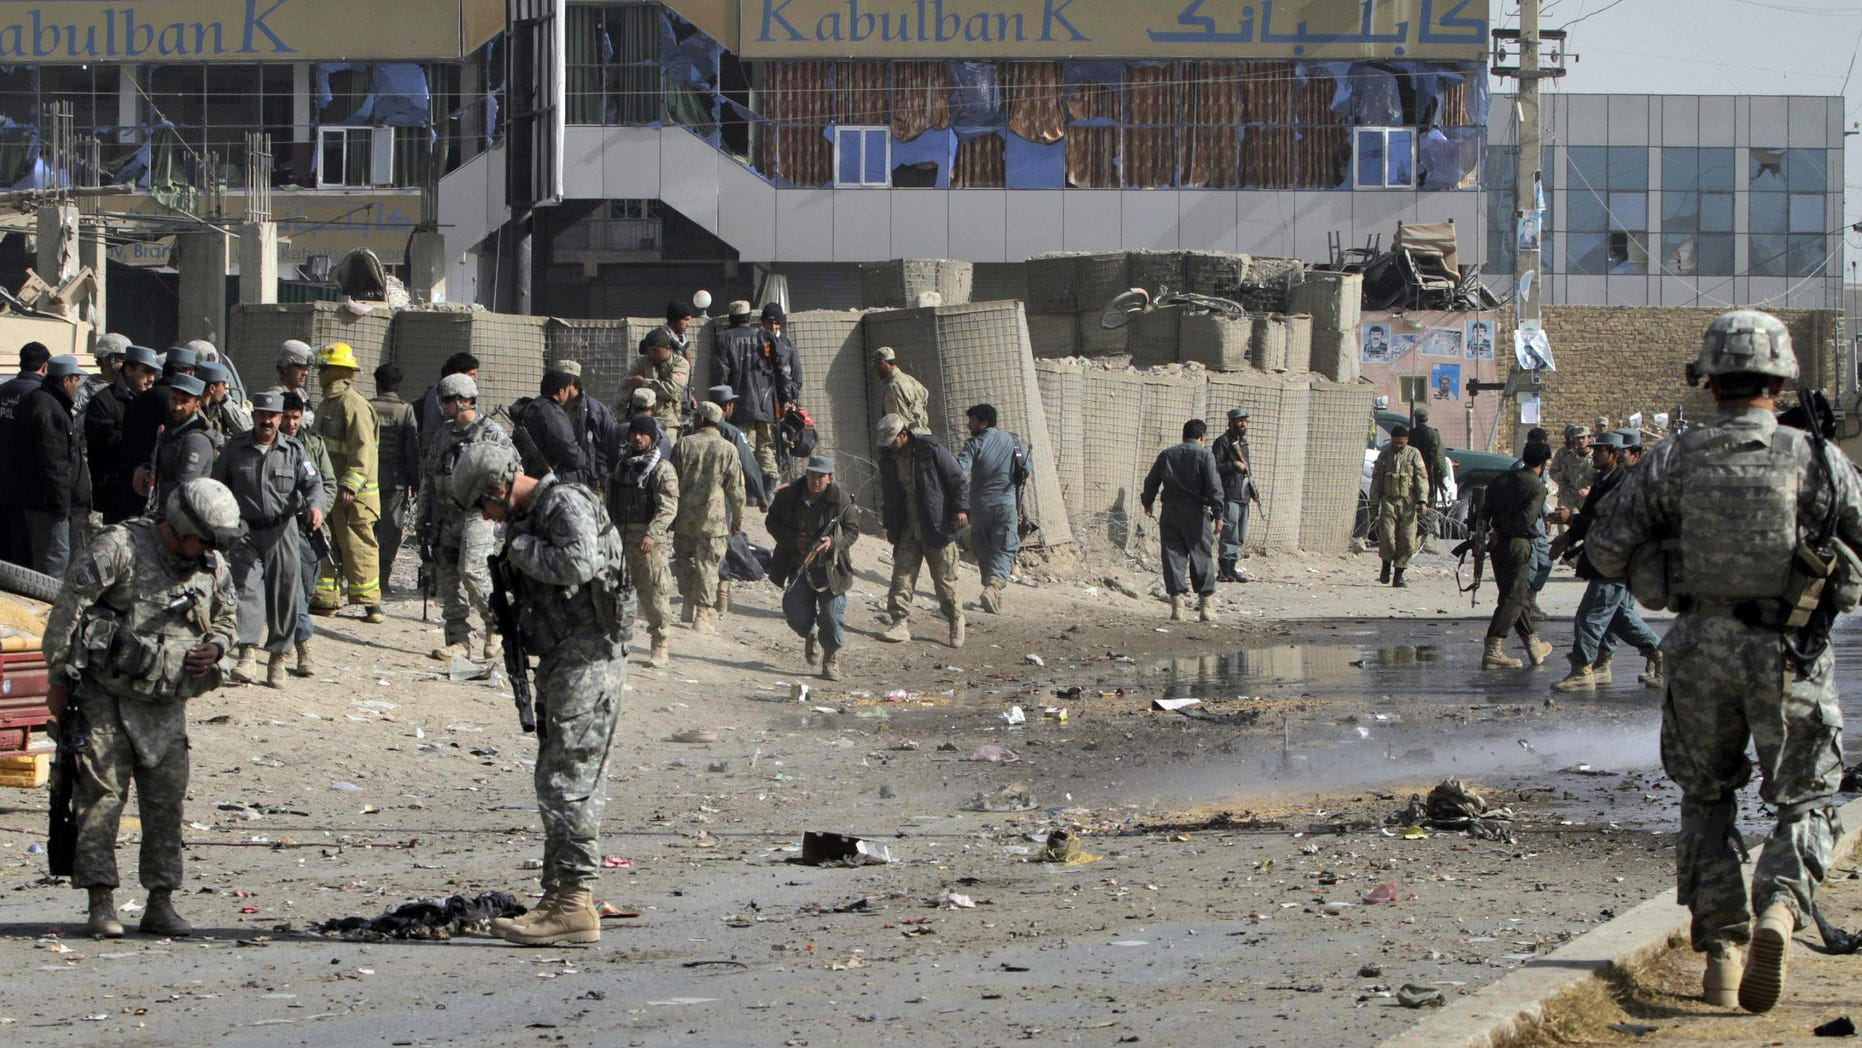 Dec. 27: U.S soldiers and Afghan policemen are seen at the scene of a suicide attack in Kandahar south of Kabul, Afghanistan. On Dec. 28 a U.S. military commander says it's 'naive' to think there's a practical way to seal Afghanistan's vast border with Pakistan and stop all Taliban fighters from slipping through.